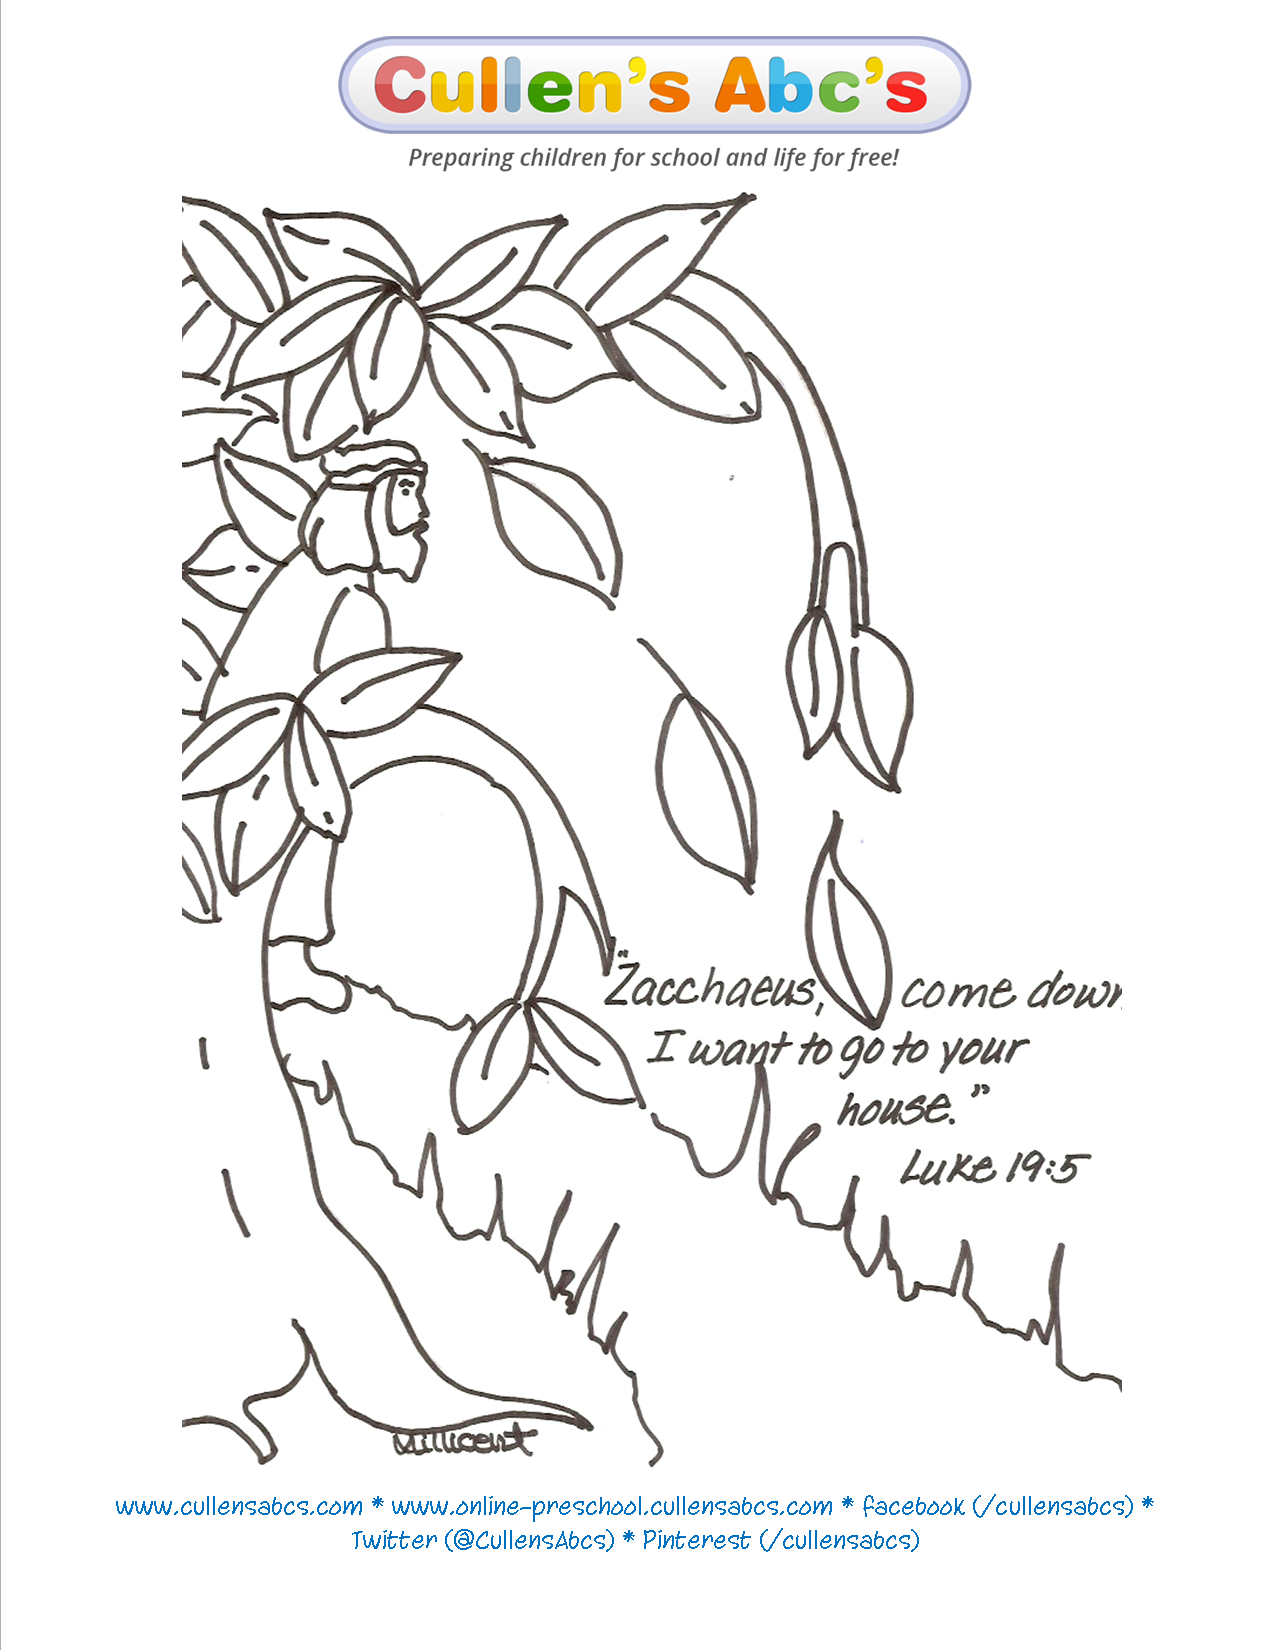 Childrens bible stories and coloring pages - Zacchaeus Bible Memory Verse Coloring Page